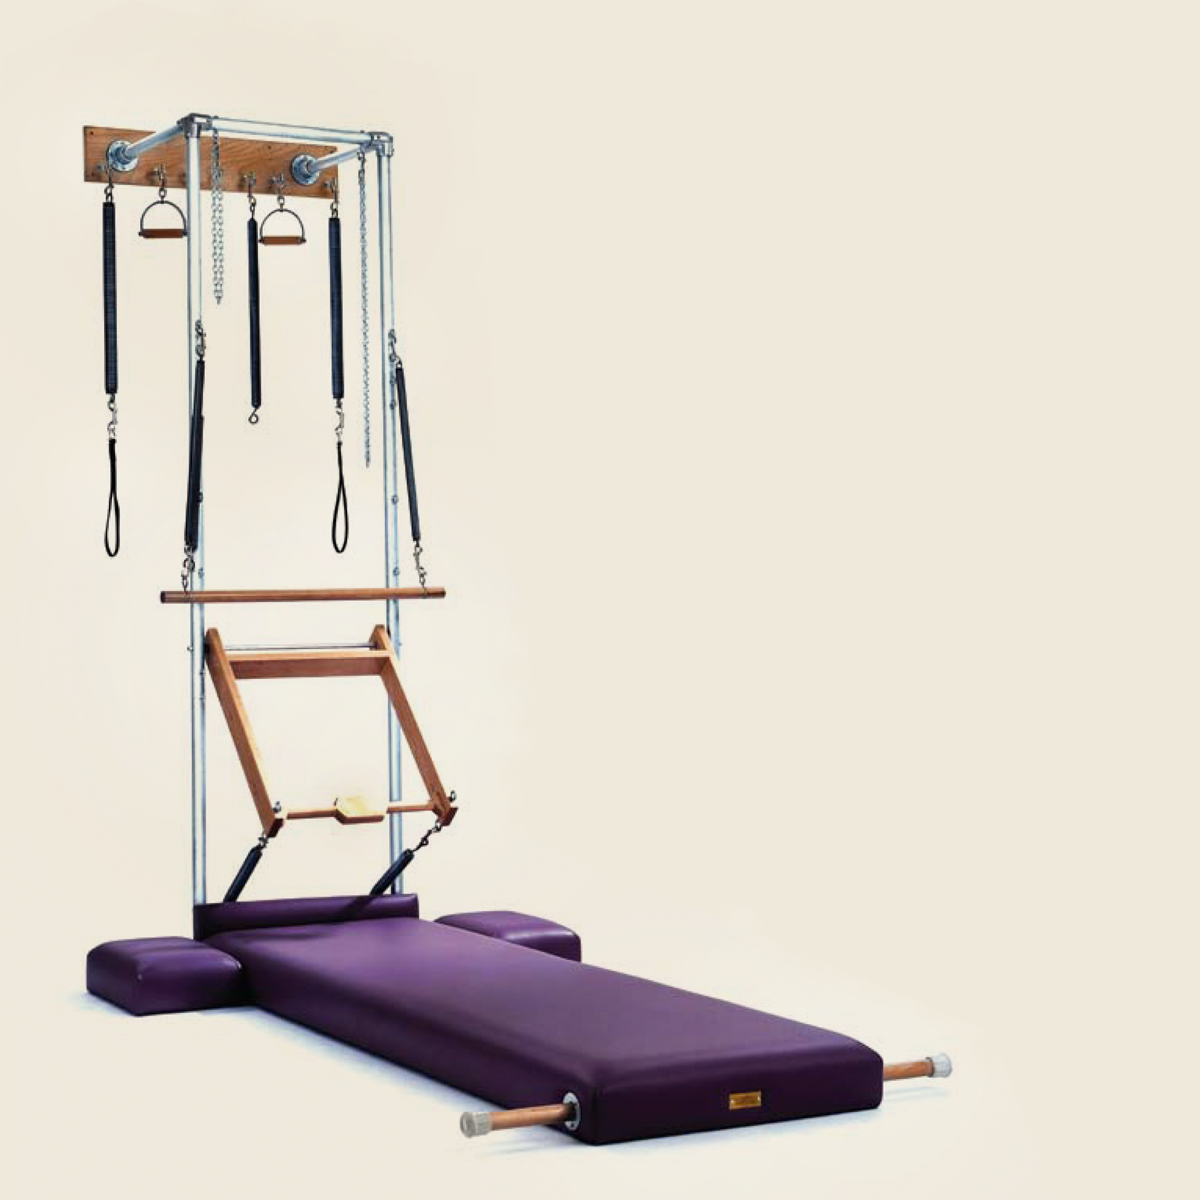 GRATZ PILATES STUDIO WALL UNIT WITH HIGH MAT